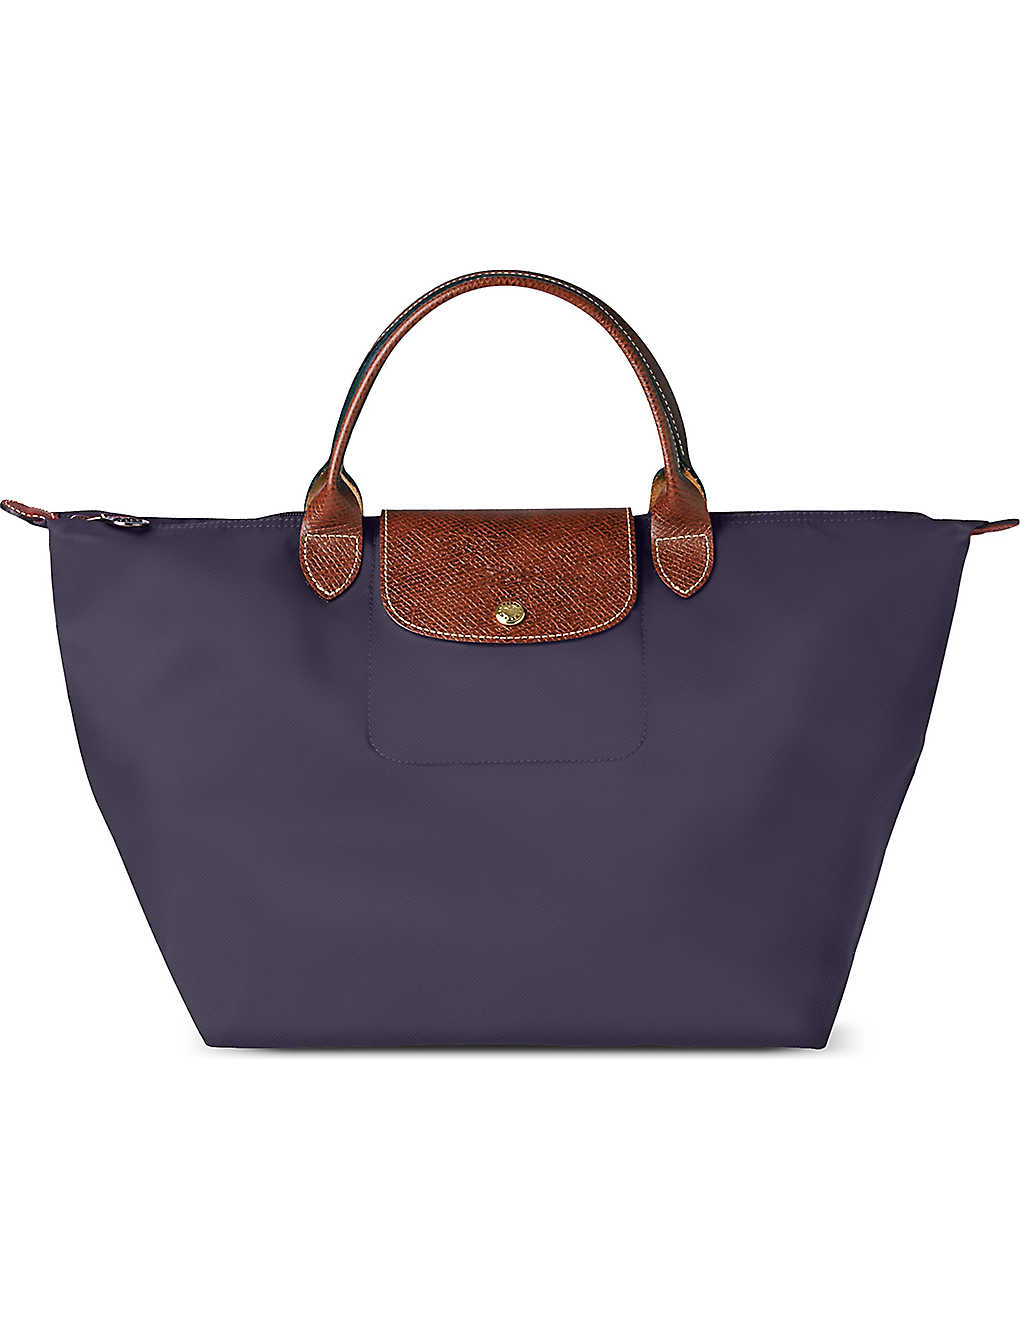 d0a2da837df LONGCHAMP - Le Pliage medium shoulder bag   Selfridges.com